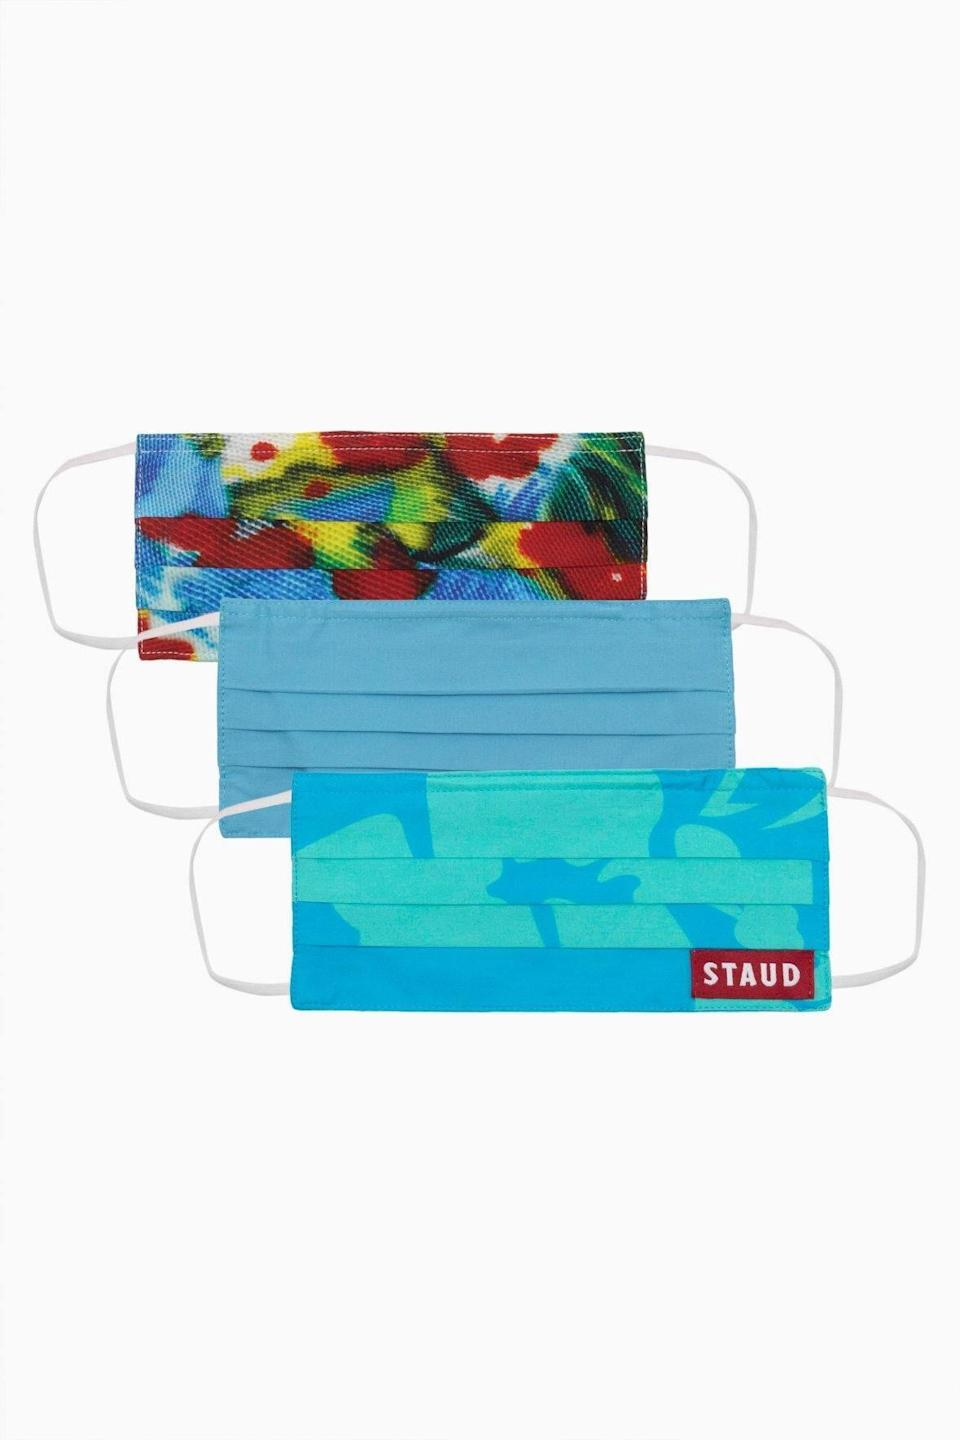 """<p><strong>Staud</strong></p><p>staud.clothing</p><p><strong>$30.00</strong></p><p><a href=""""https://go.redirectingat.com?id=74968X1596630&url=https%3A%2F%2Fstaud.clothing%2Fproducts%2Fpoplin-mask-set-blue-floral%3Fvariant%3D32481348157521%26ranMID%3D44120%26ranEAID%3Dtv2R4u9rImY%26ranSiteID%3Dtv2R4u9rImY-X.nm9EngMNOIu_bgQamNHA&sref=https%3A%2F%2Fwww.elle.com%2Ffashion%2Fshopping%2Fg32215868%2Ffashion-face-masks%2F"""" rel=""""nofollow noopener"""" target=""""_blank"""" data-ylk=""""slk:Shop Now"""" class=""""link rapid-noclick-resp"""">Shop Now</a></p><p>Opt for tropical prints with Staud's reusable styles. </p>"""